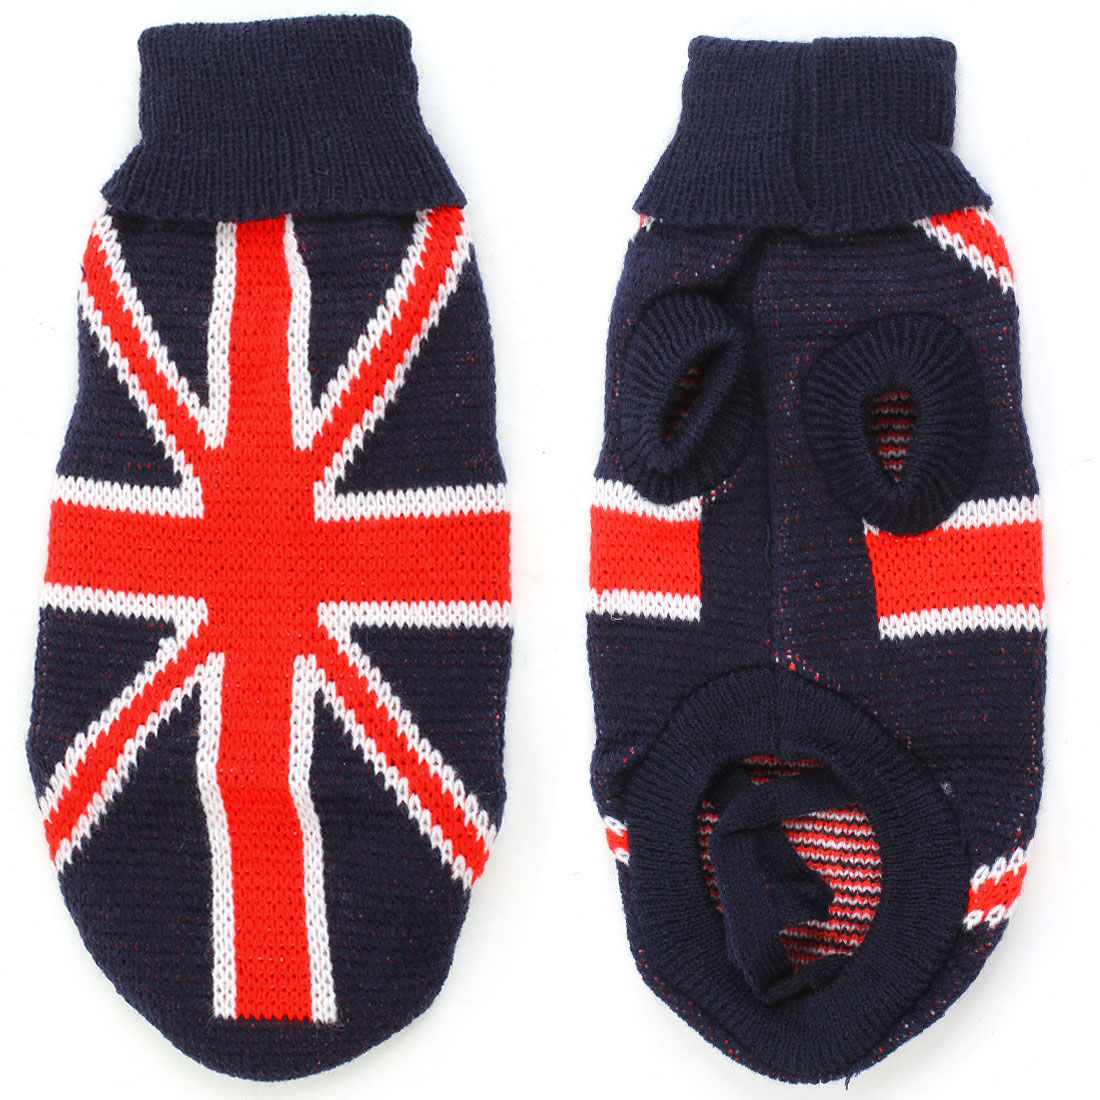 Unique Bargains Winter Turtleneck Red UK Flag Printed Navy Blue Pet Dog Clothes Sweater XXS